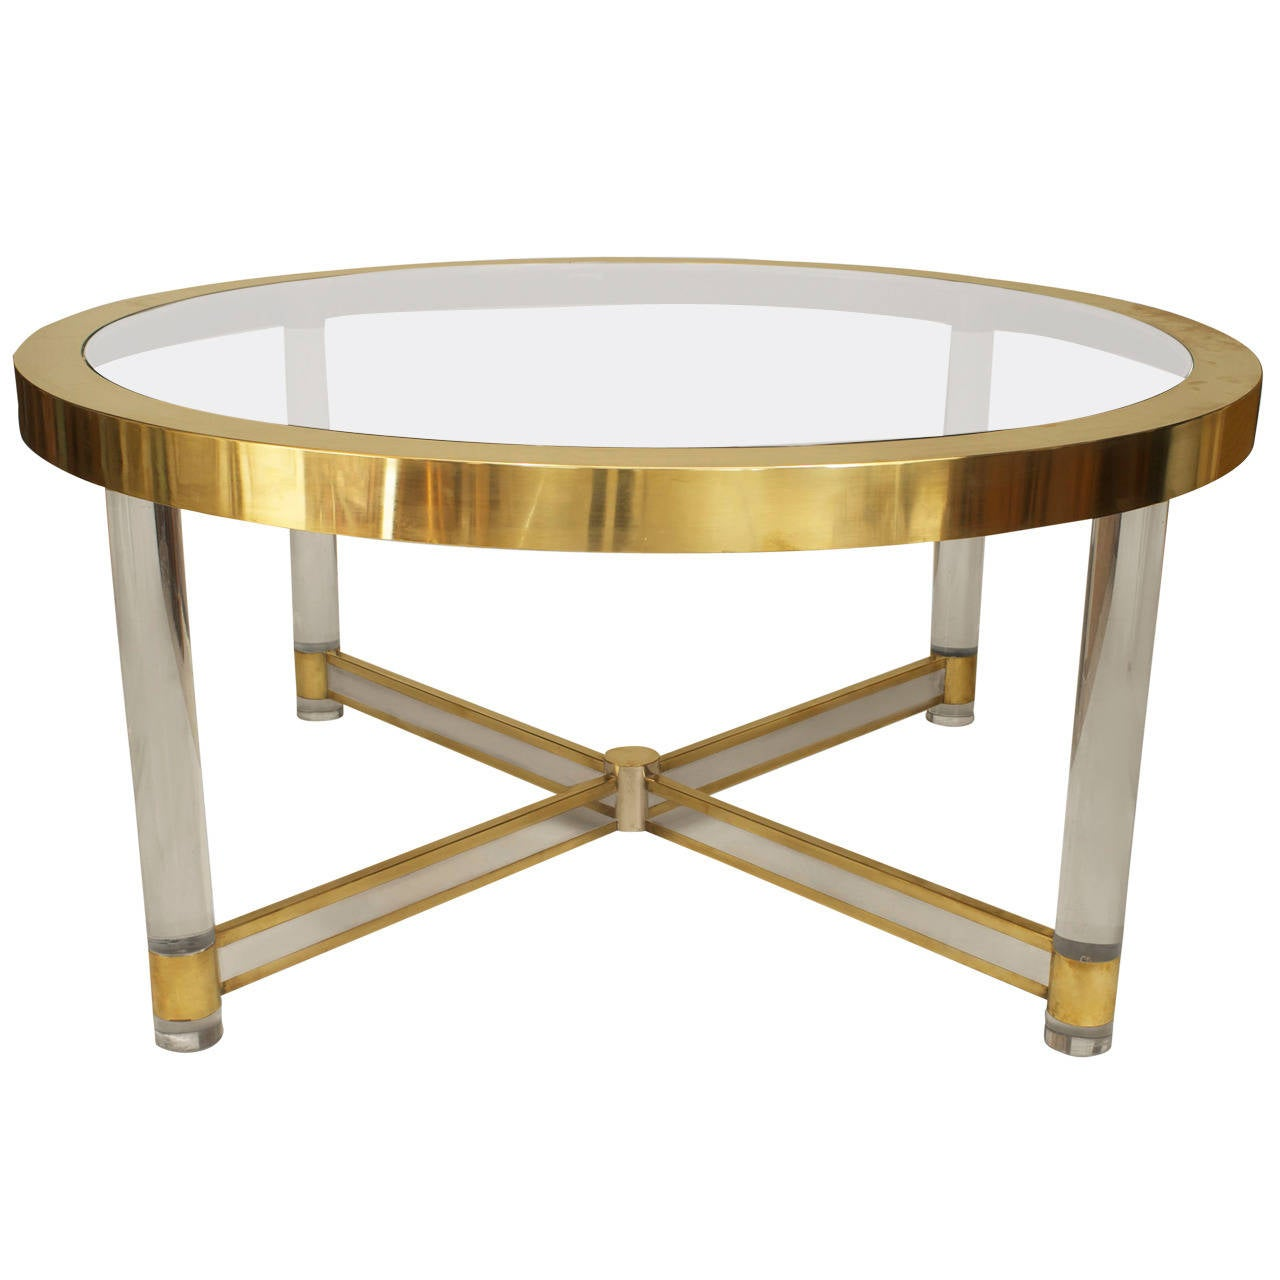 French Silver And Brass-Trimmed, Glass And Lucite Dining